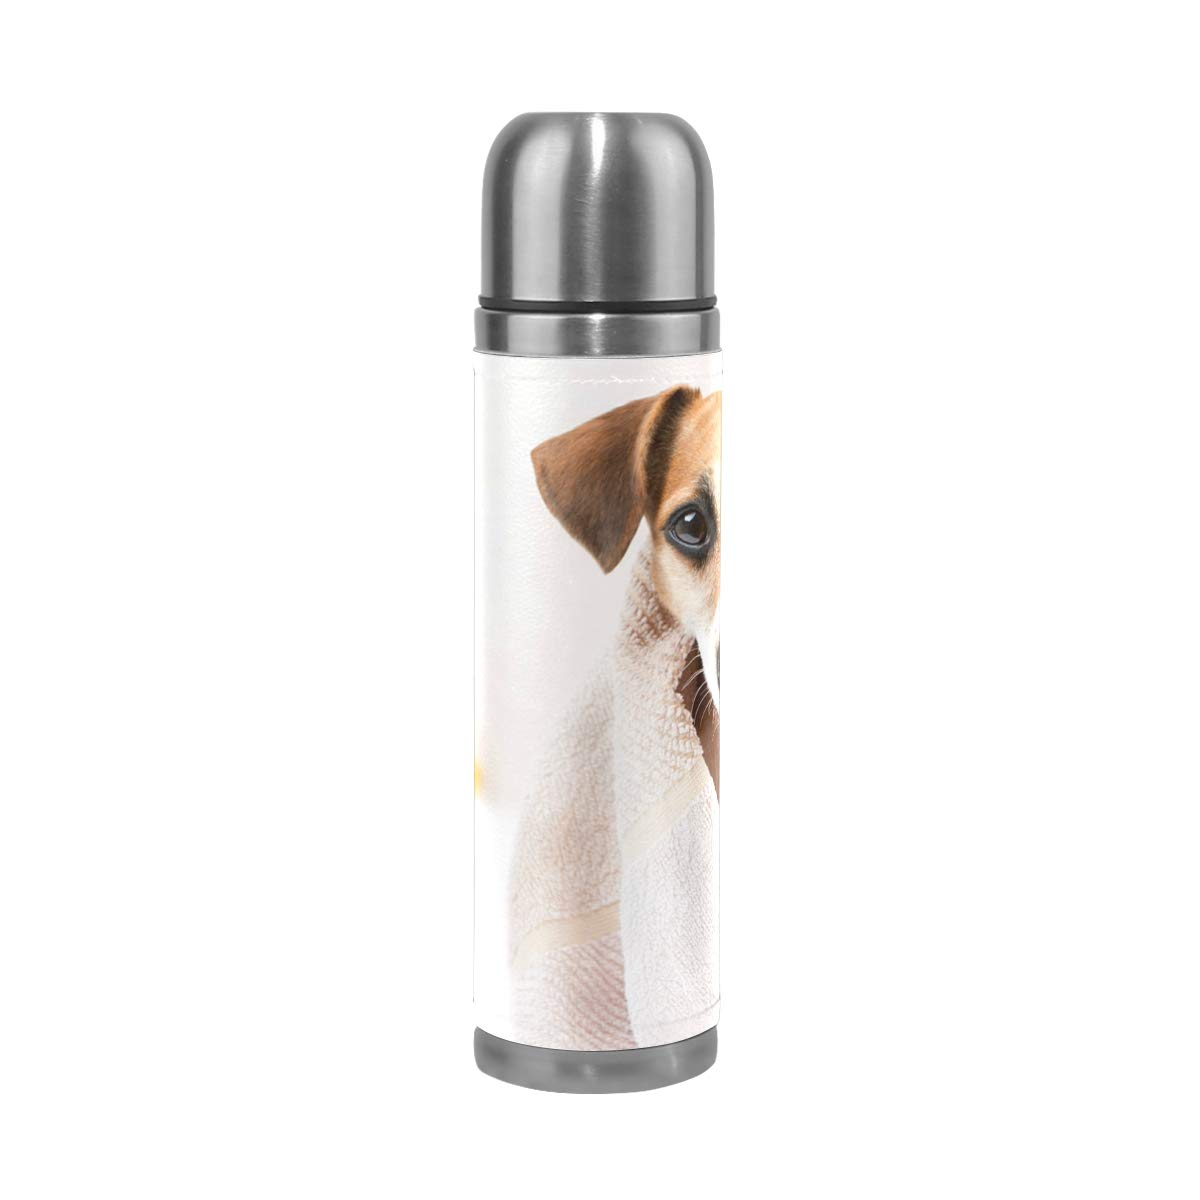 Clean Pet Spa Water Bottle Stainless Steel Leak Proof Double Walled Vacuum Insulated Travel Coffee Mug Genuine Leather Cover Drink Cup 17 OZ